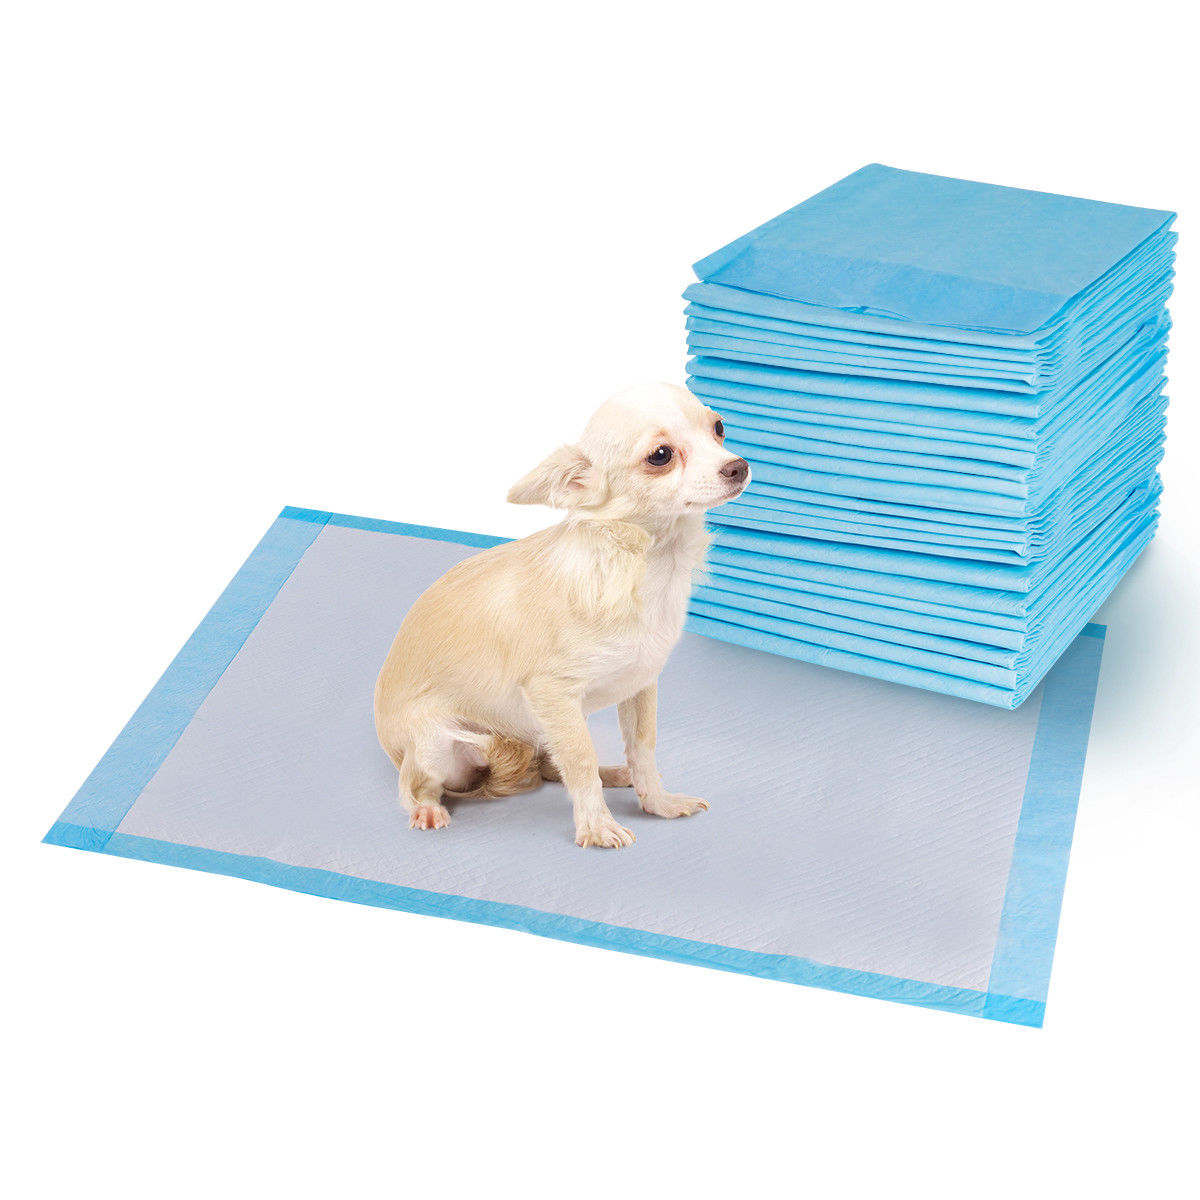 Costway 100 PCS 30''x 36'' Puppy Pet Pads Dog Cat Wee Pee Piddle Pad training underpads